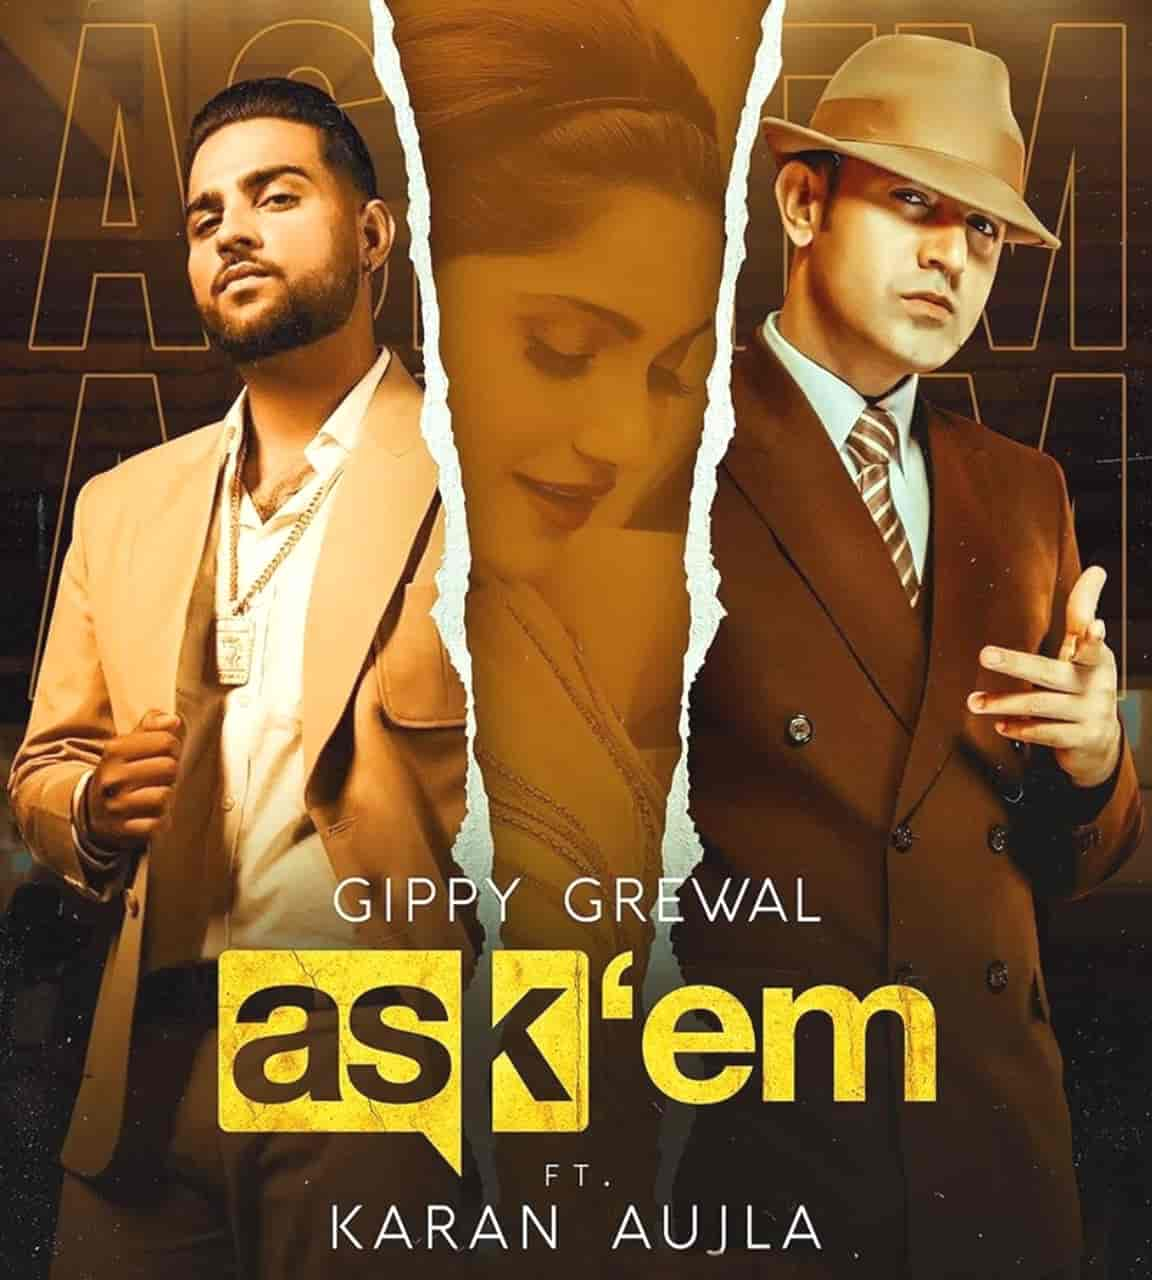 Ask Them Punjabi Song Image Features Gippy Grewal and Karan Aujla